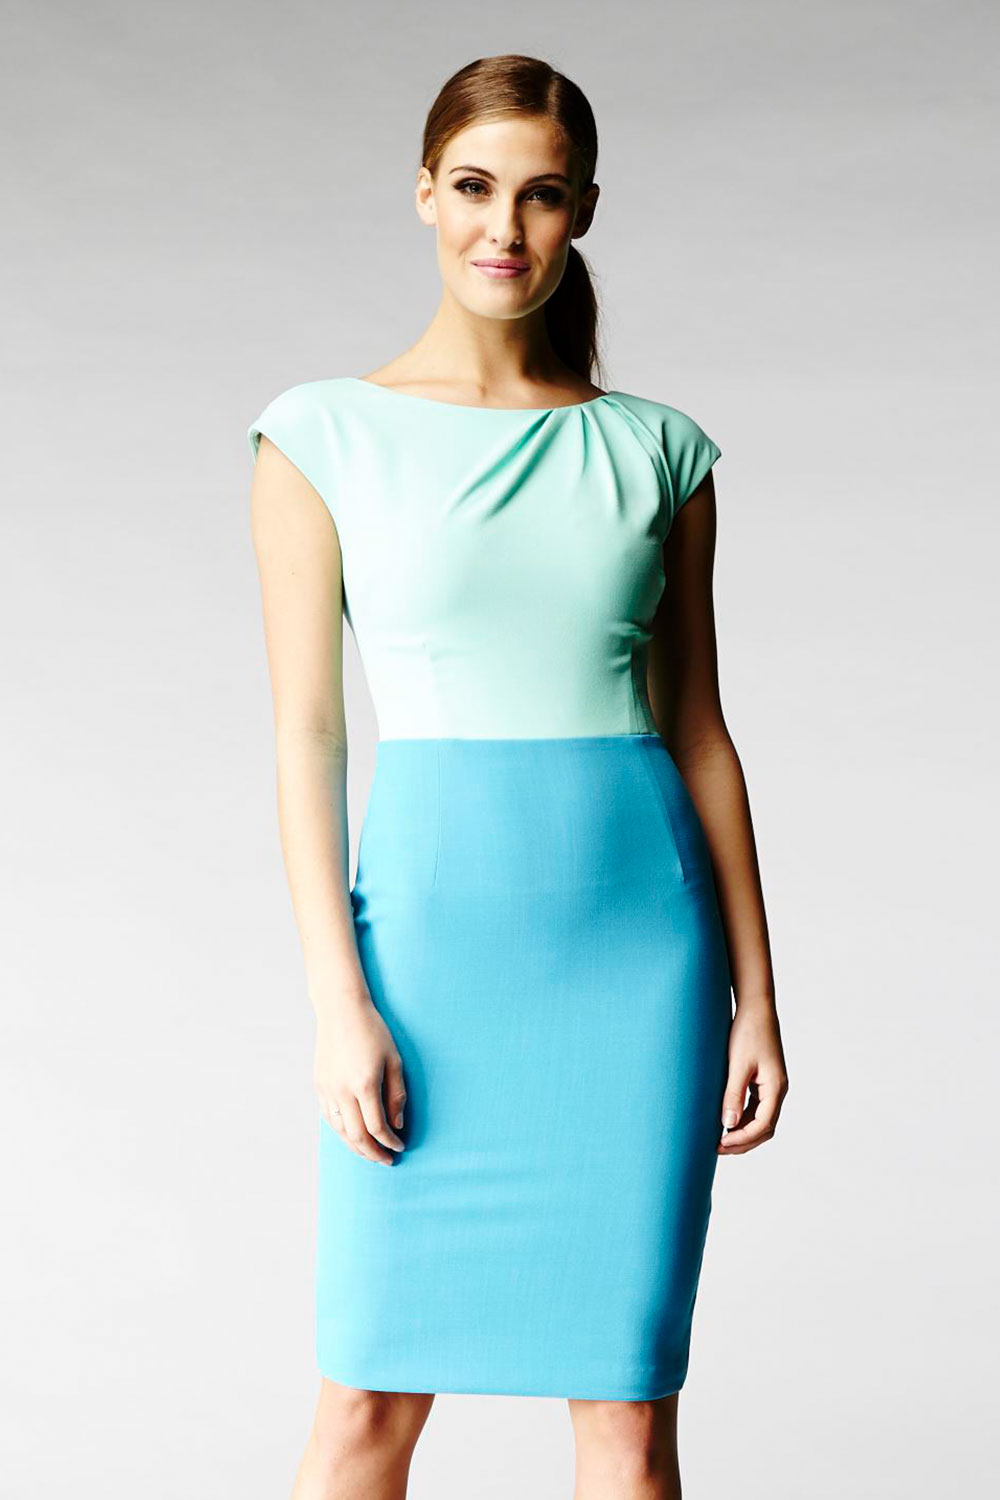 Hybrid Fashion 1098 Addison Contrast Pencil Dress